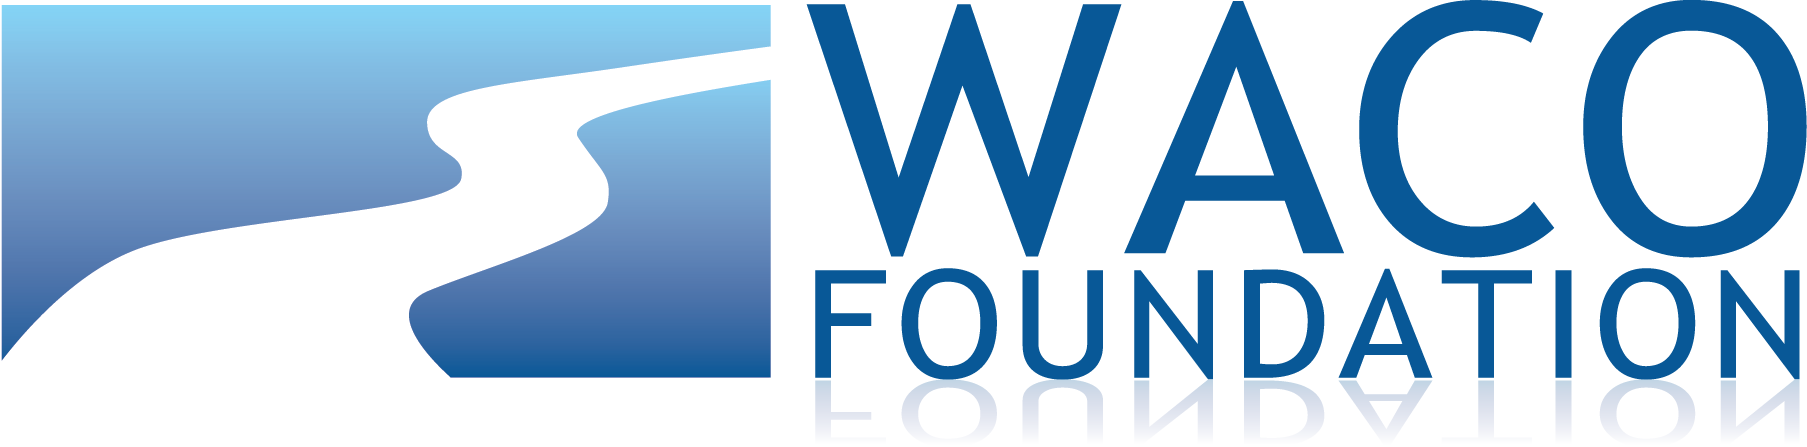 Waco-Foundation-logo-NEW-WITH-shadow.png